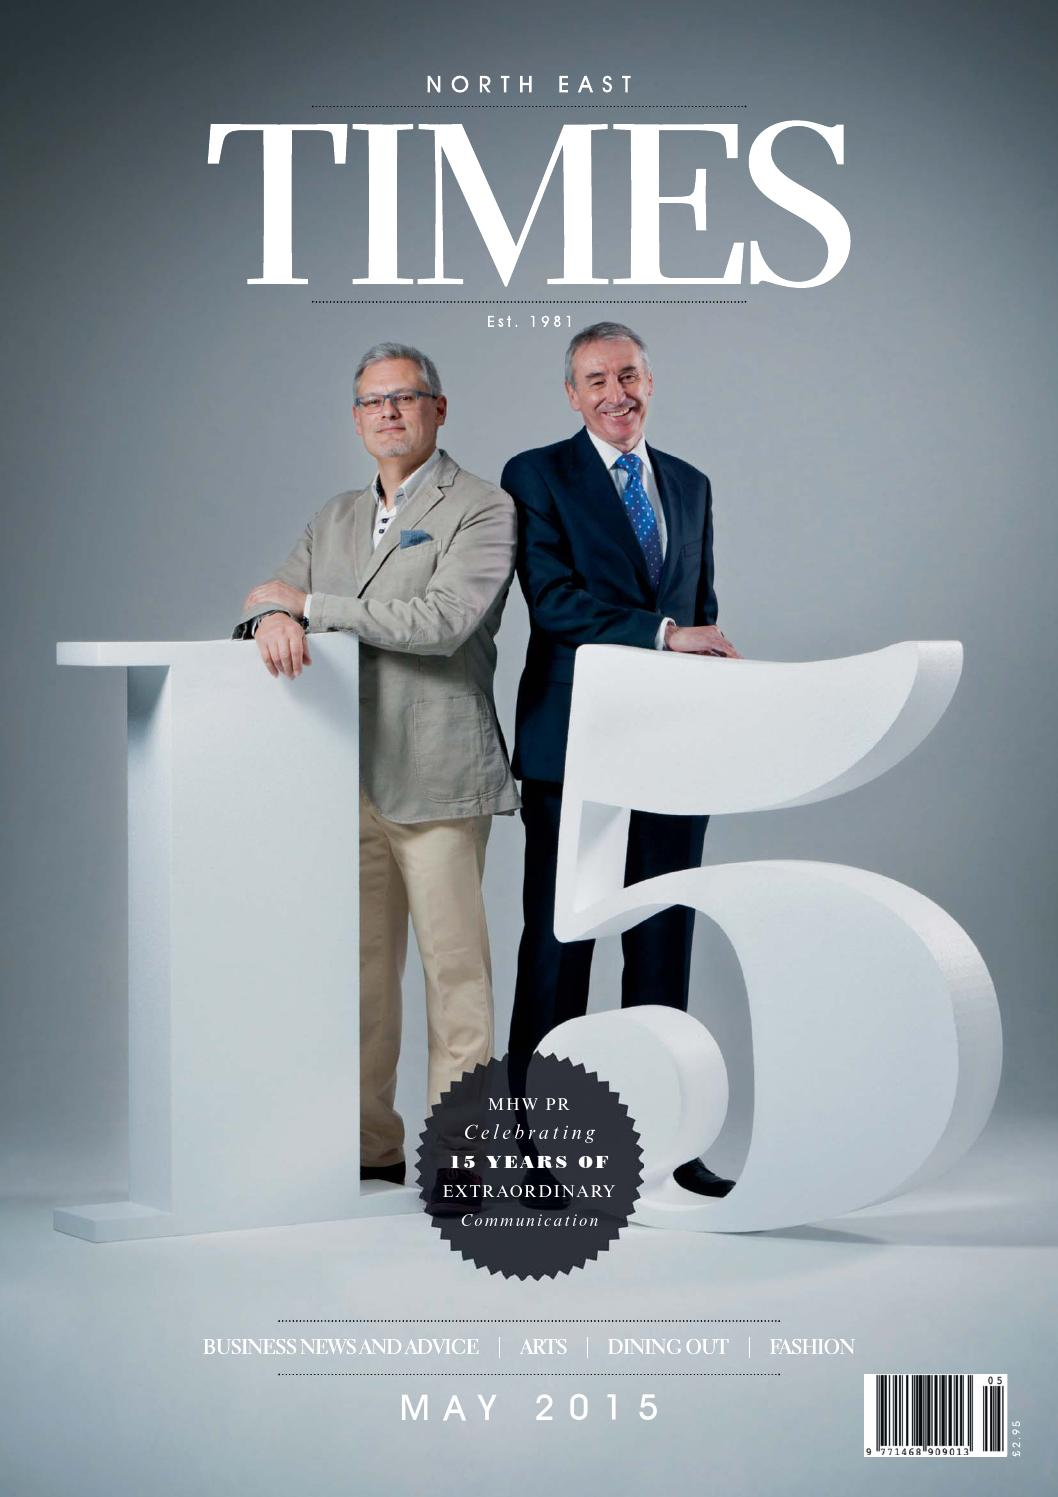 North East Times Magazine - May 2015 by North East Times Magazine ...